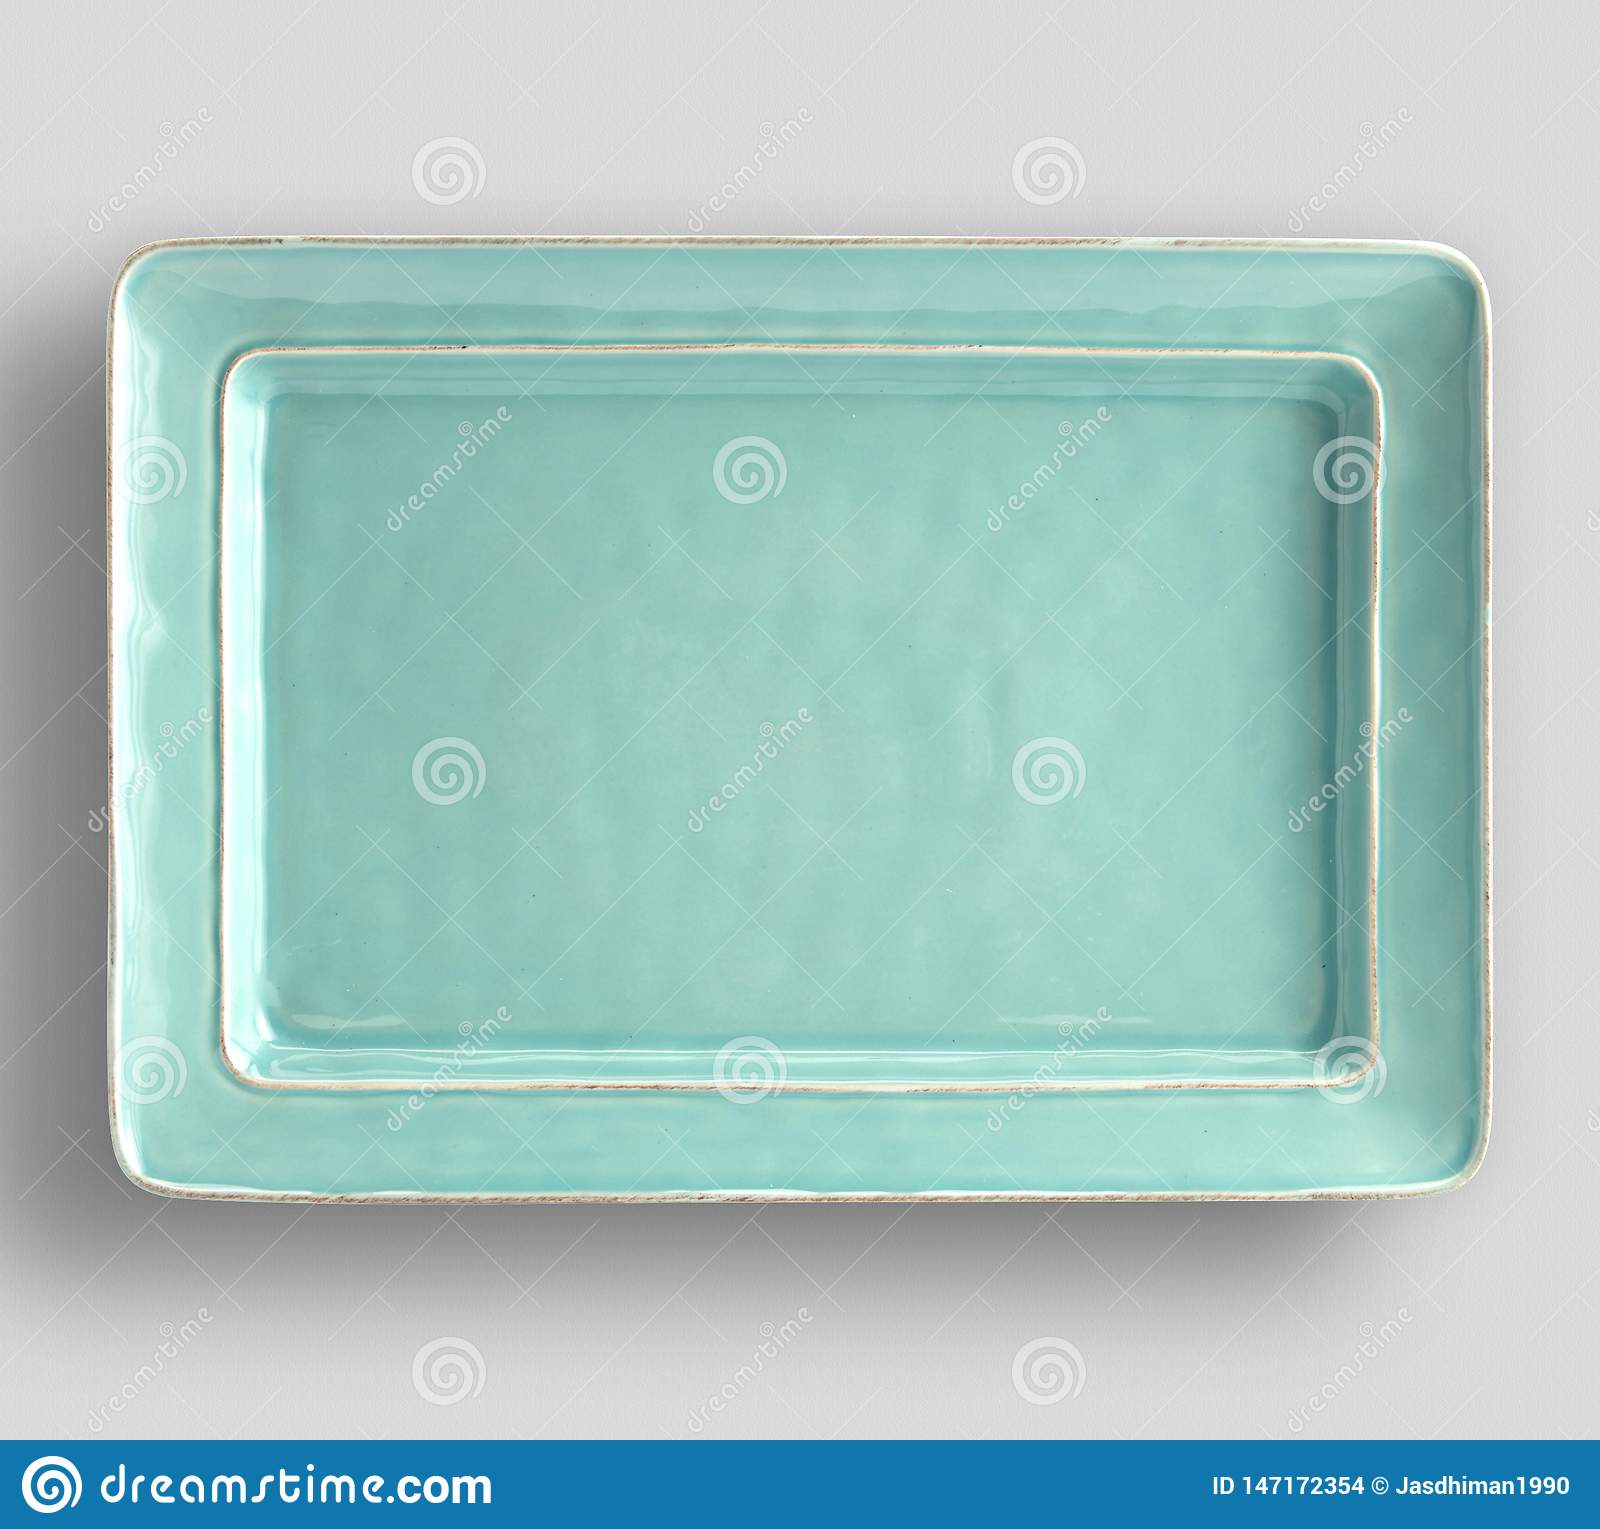 Gray plate on white background - Image